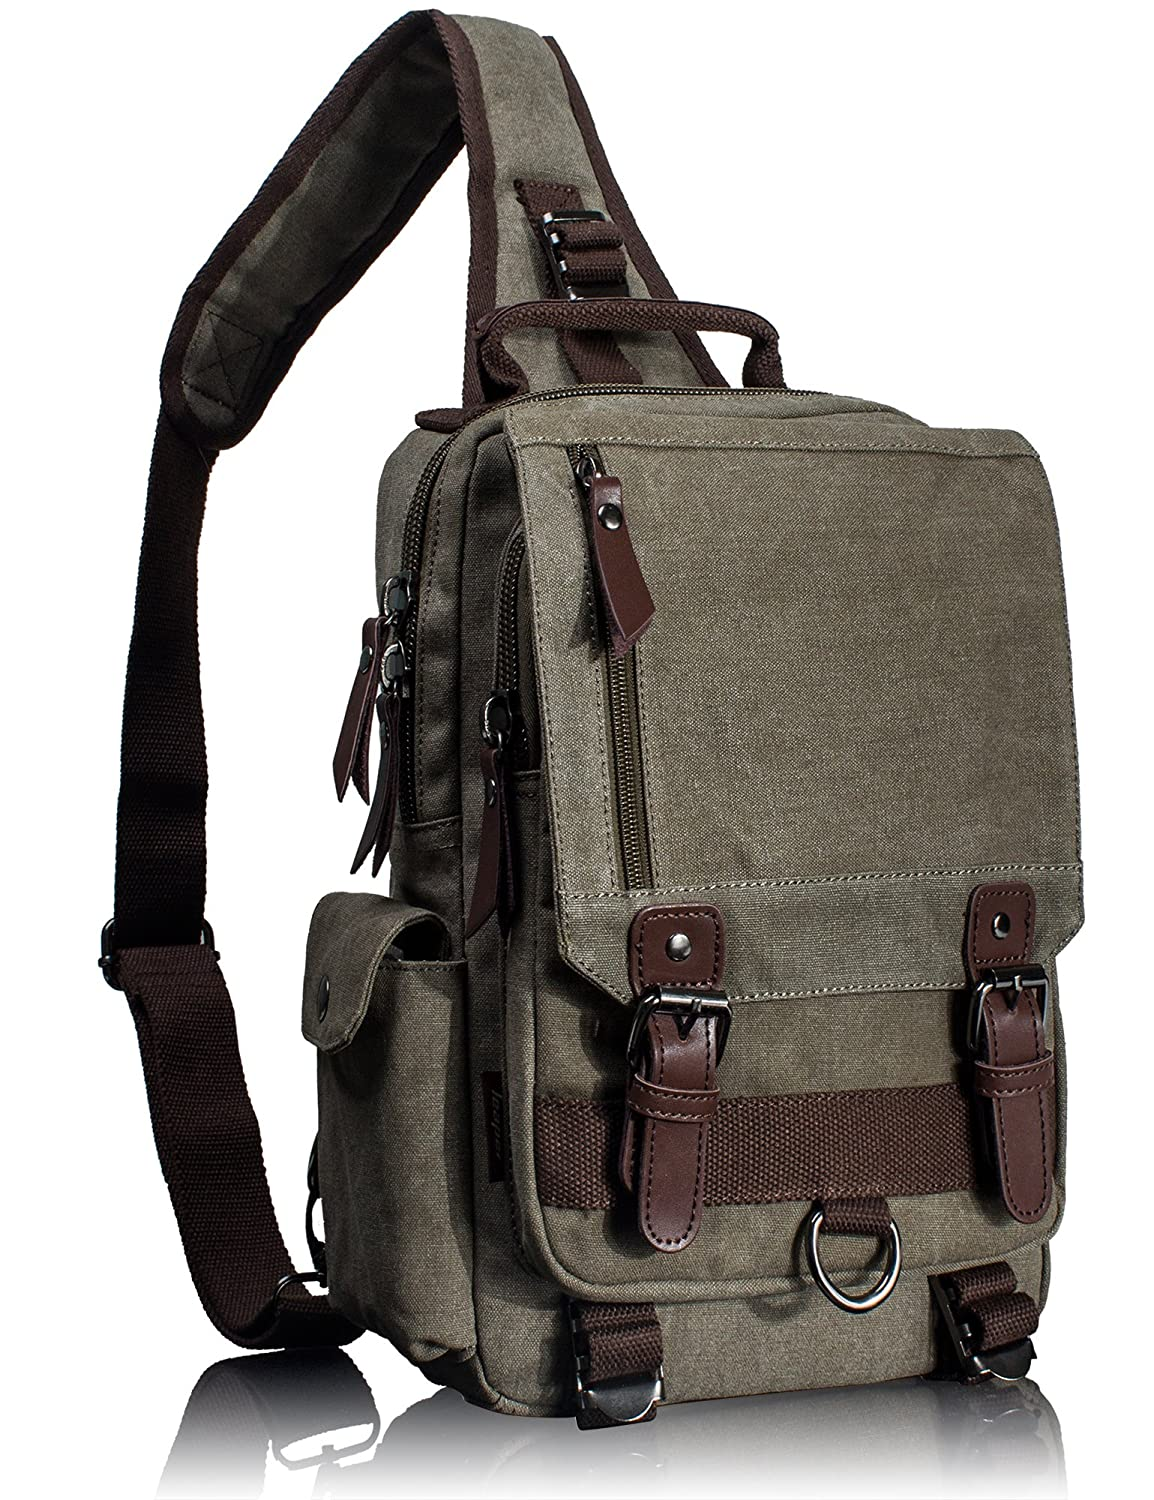 Leaper Canvas One Strap Sling Cross Body Messenger Bag Shoulder Backpack Rucksack Medium Coffee Fifth Season BP-2187